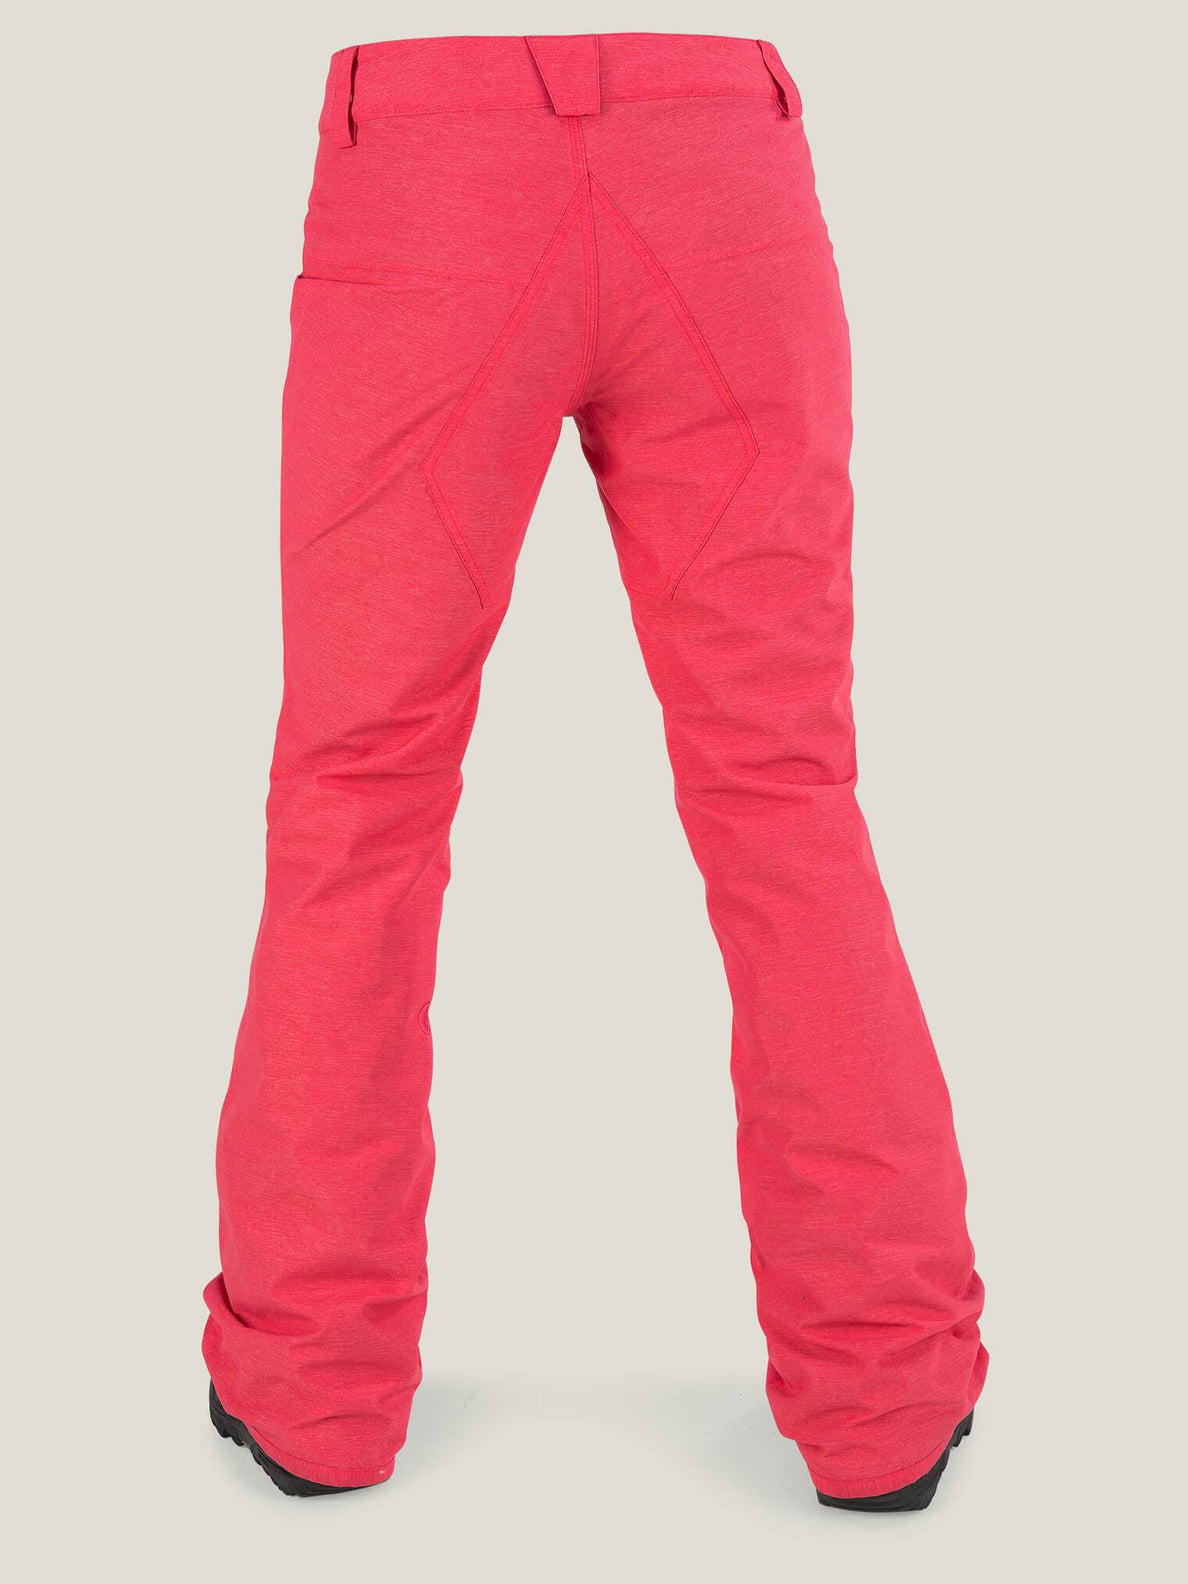 Pinto Pant In Bright Rose, Back View